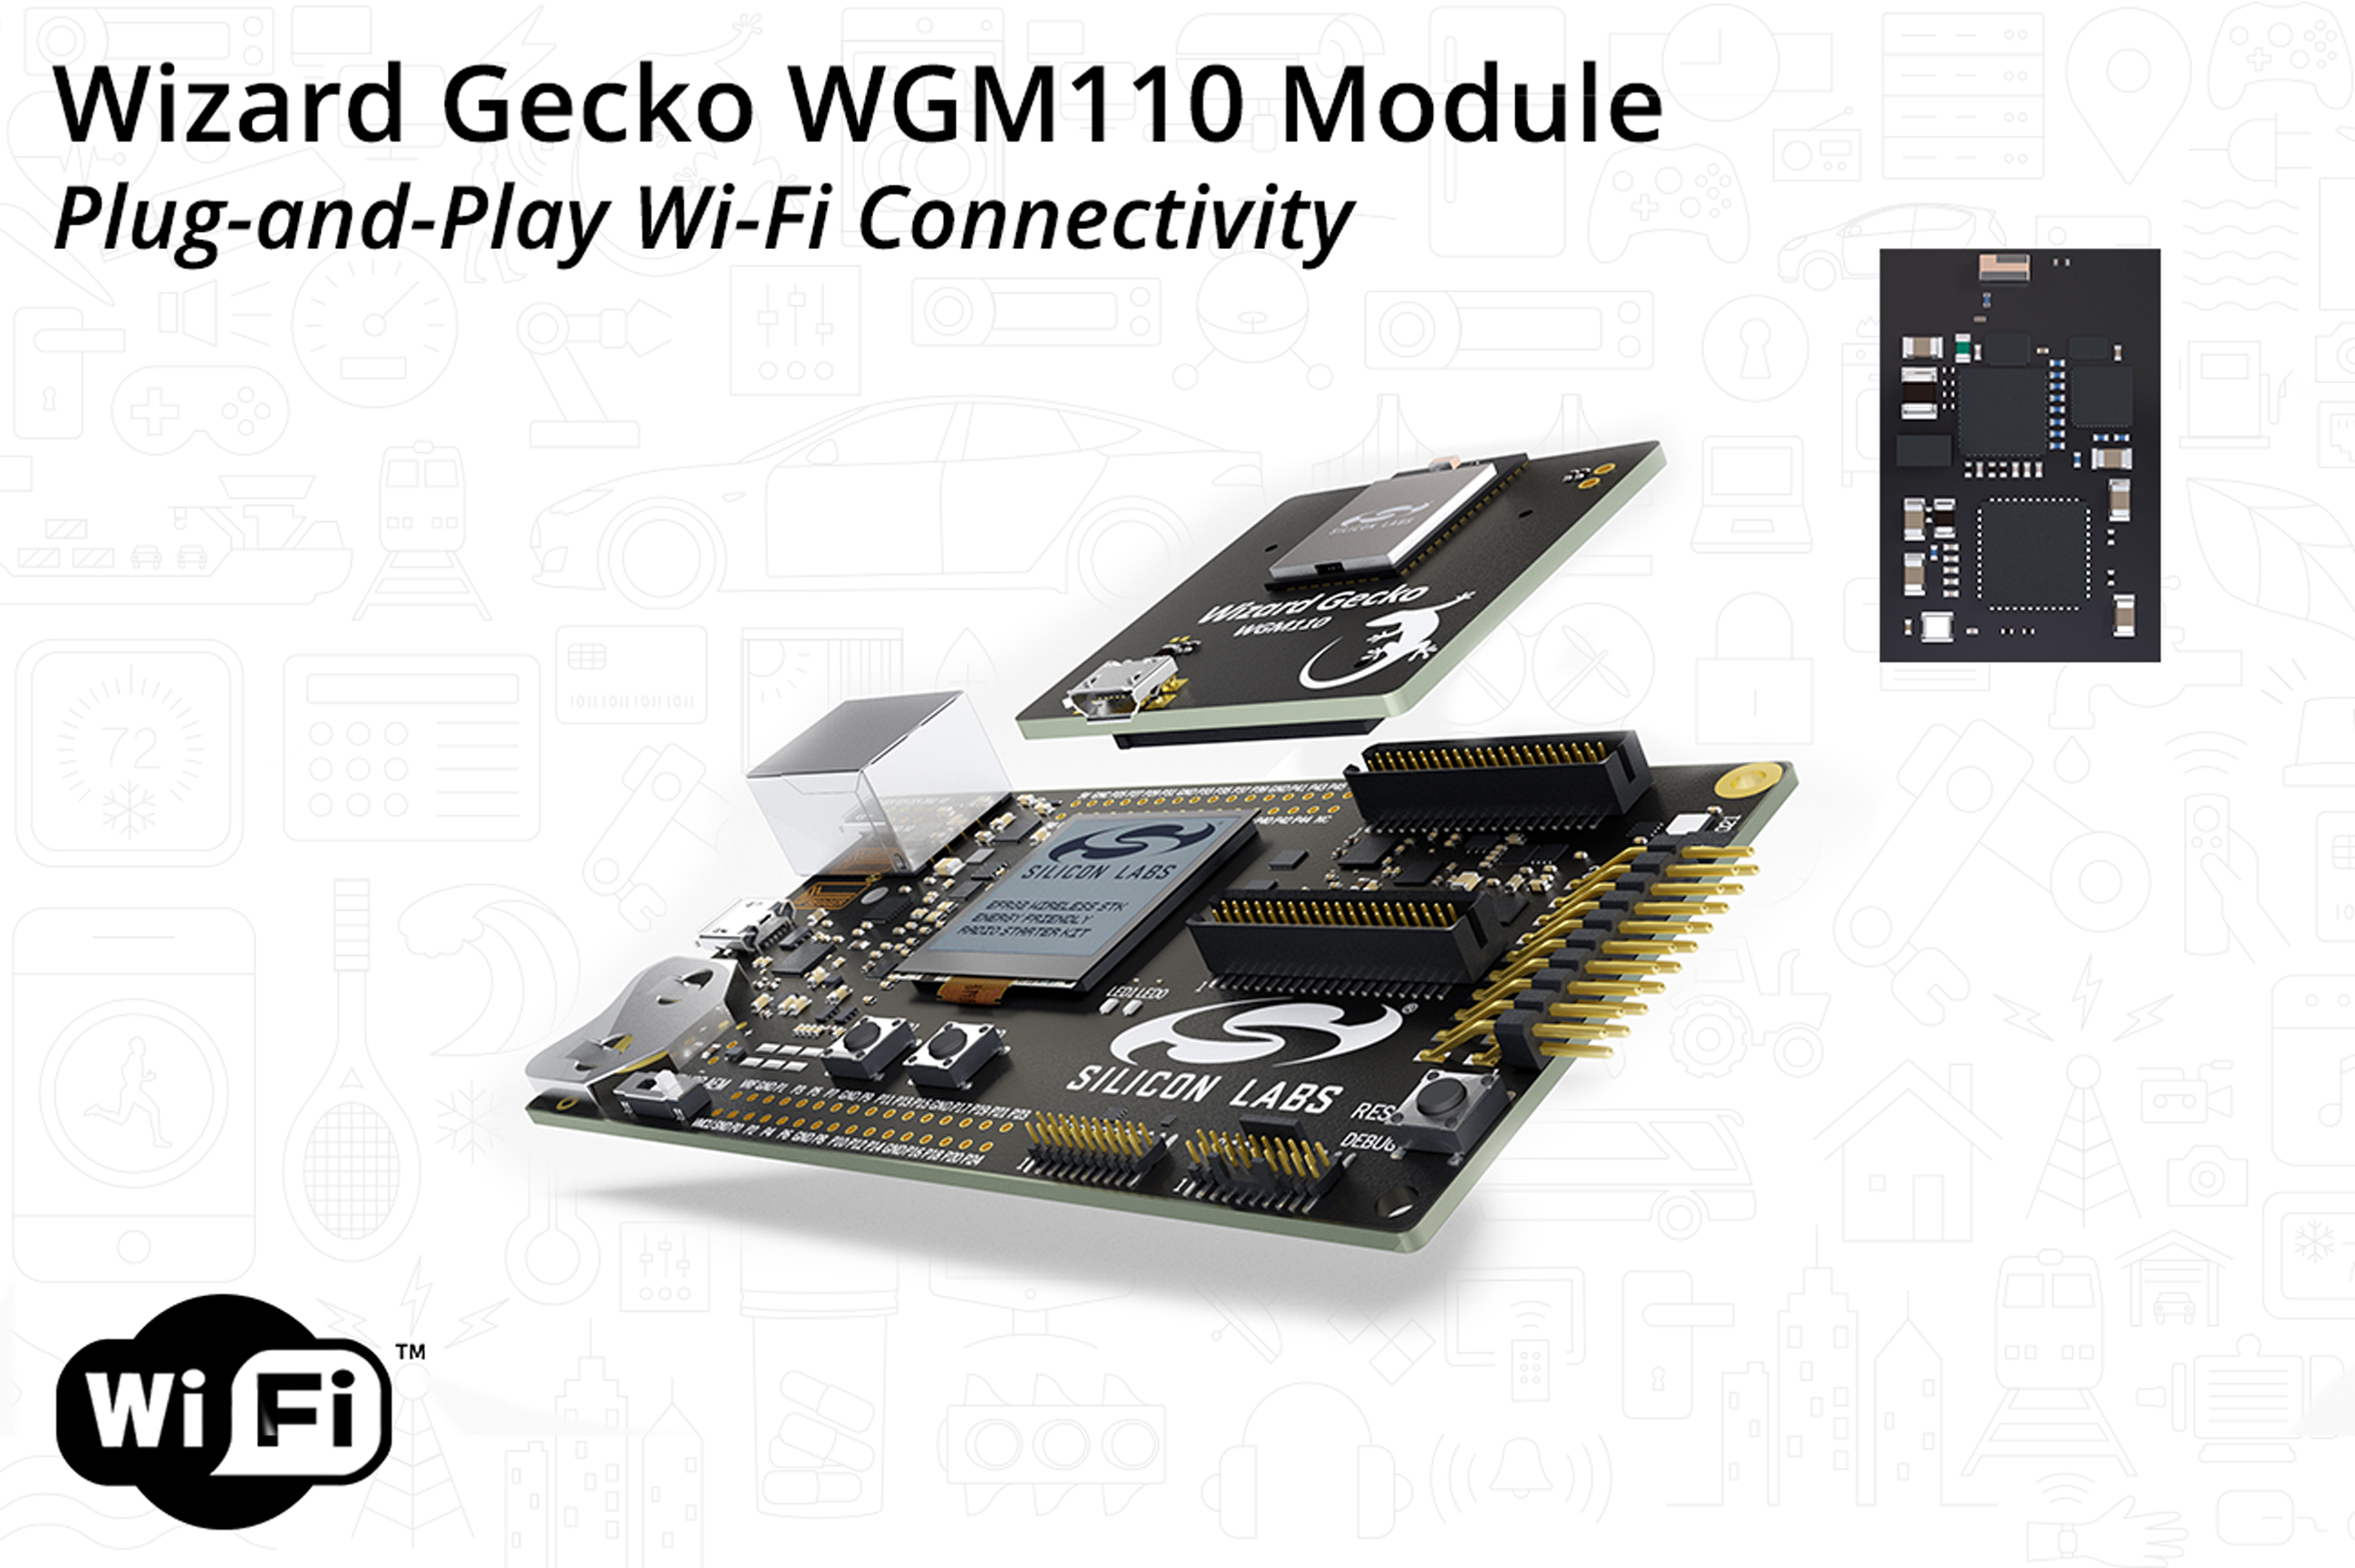 SLAB0309_WGM110_wizard-gecko-press-image